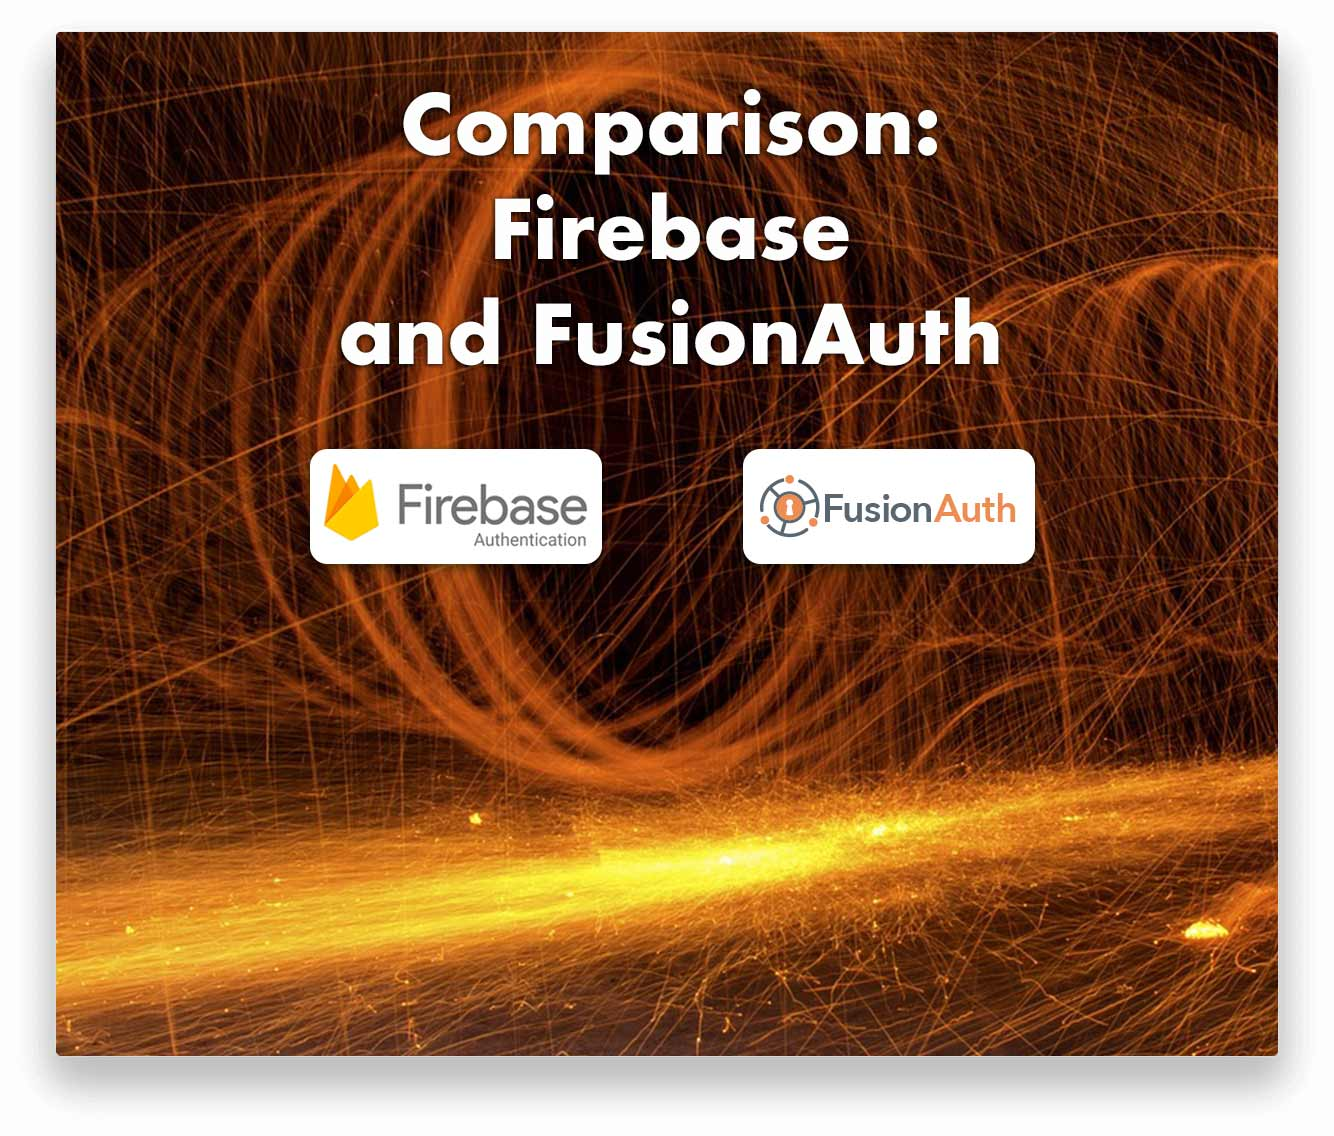 Compare FusionAuth and Firebase for your identity and access management solution.